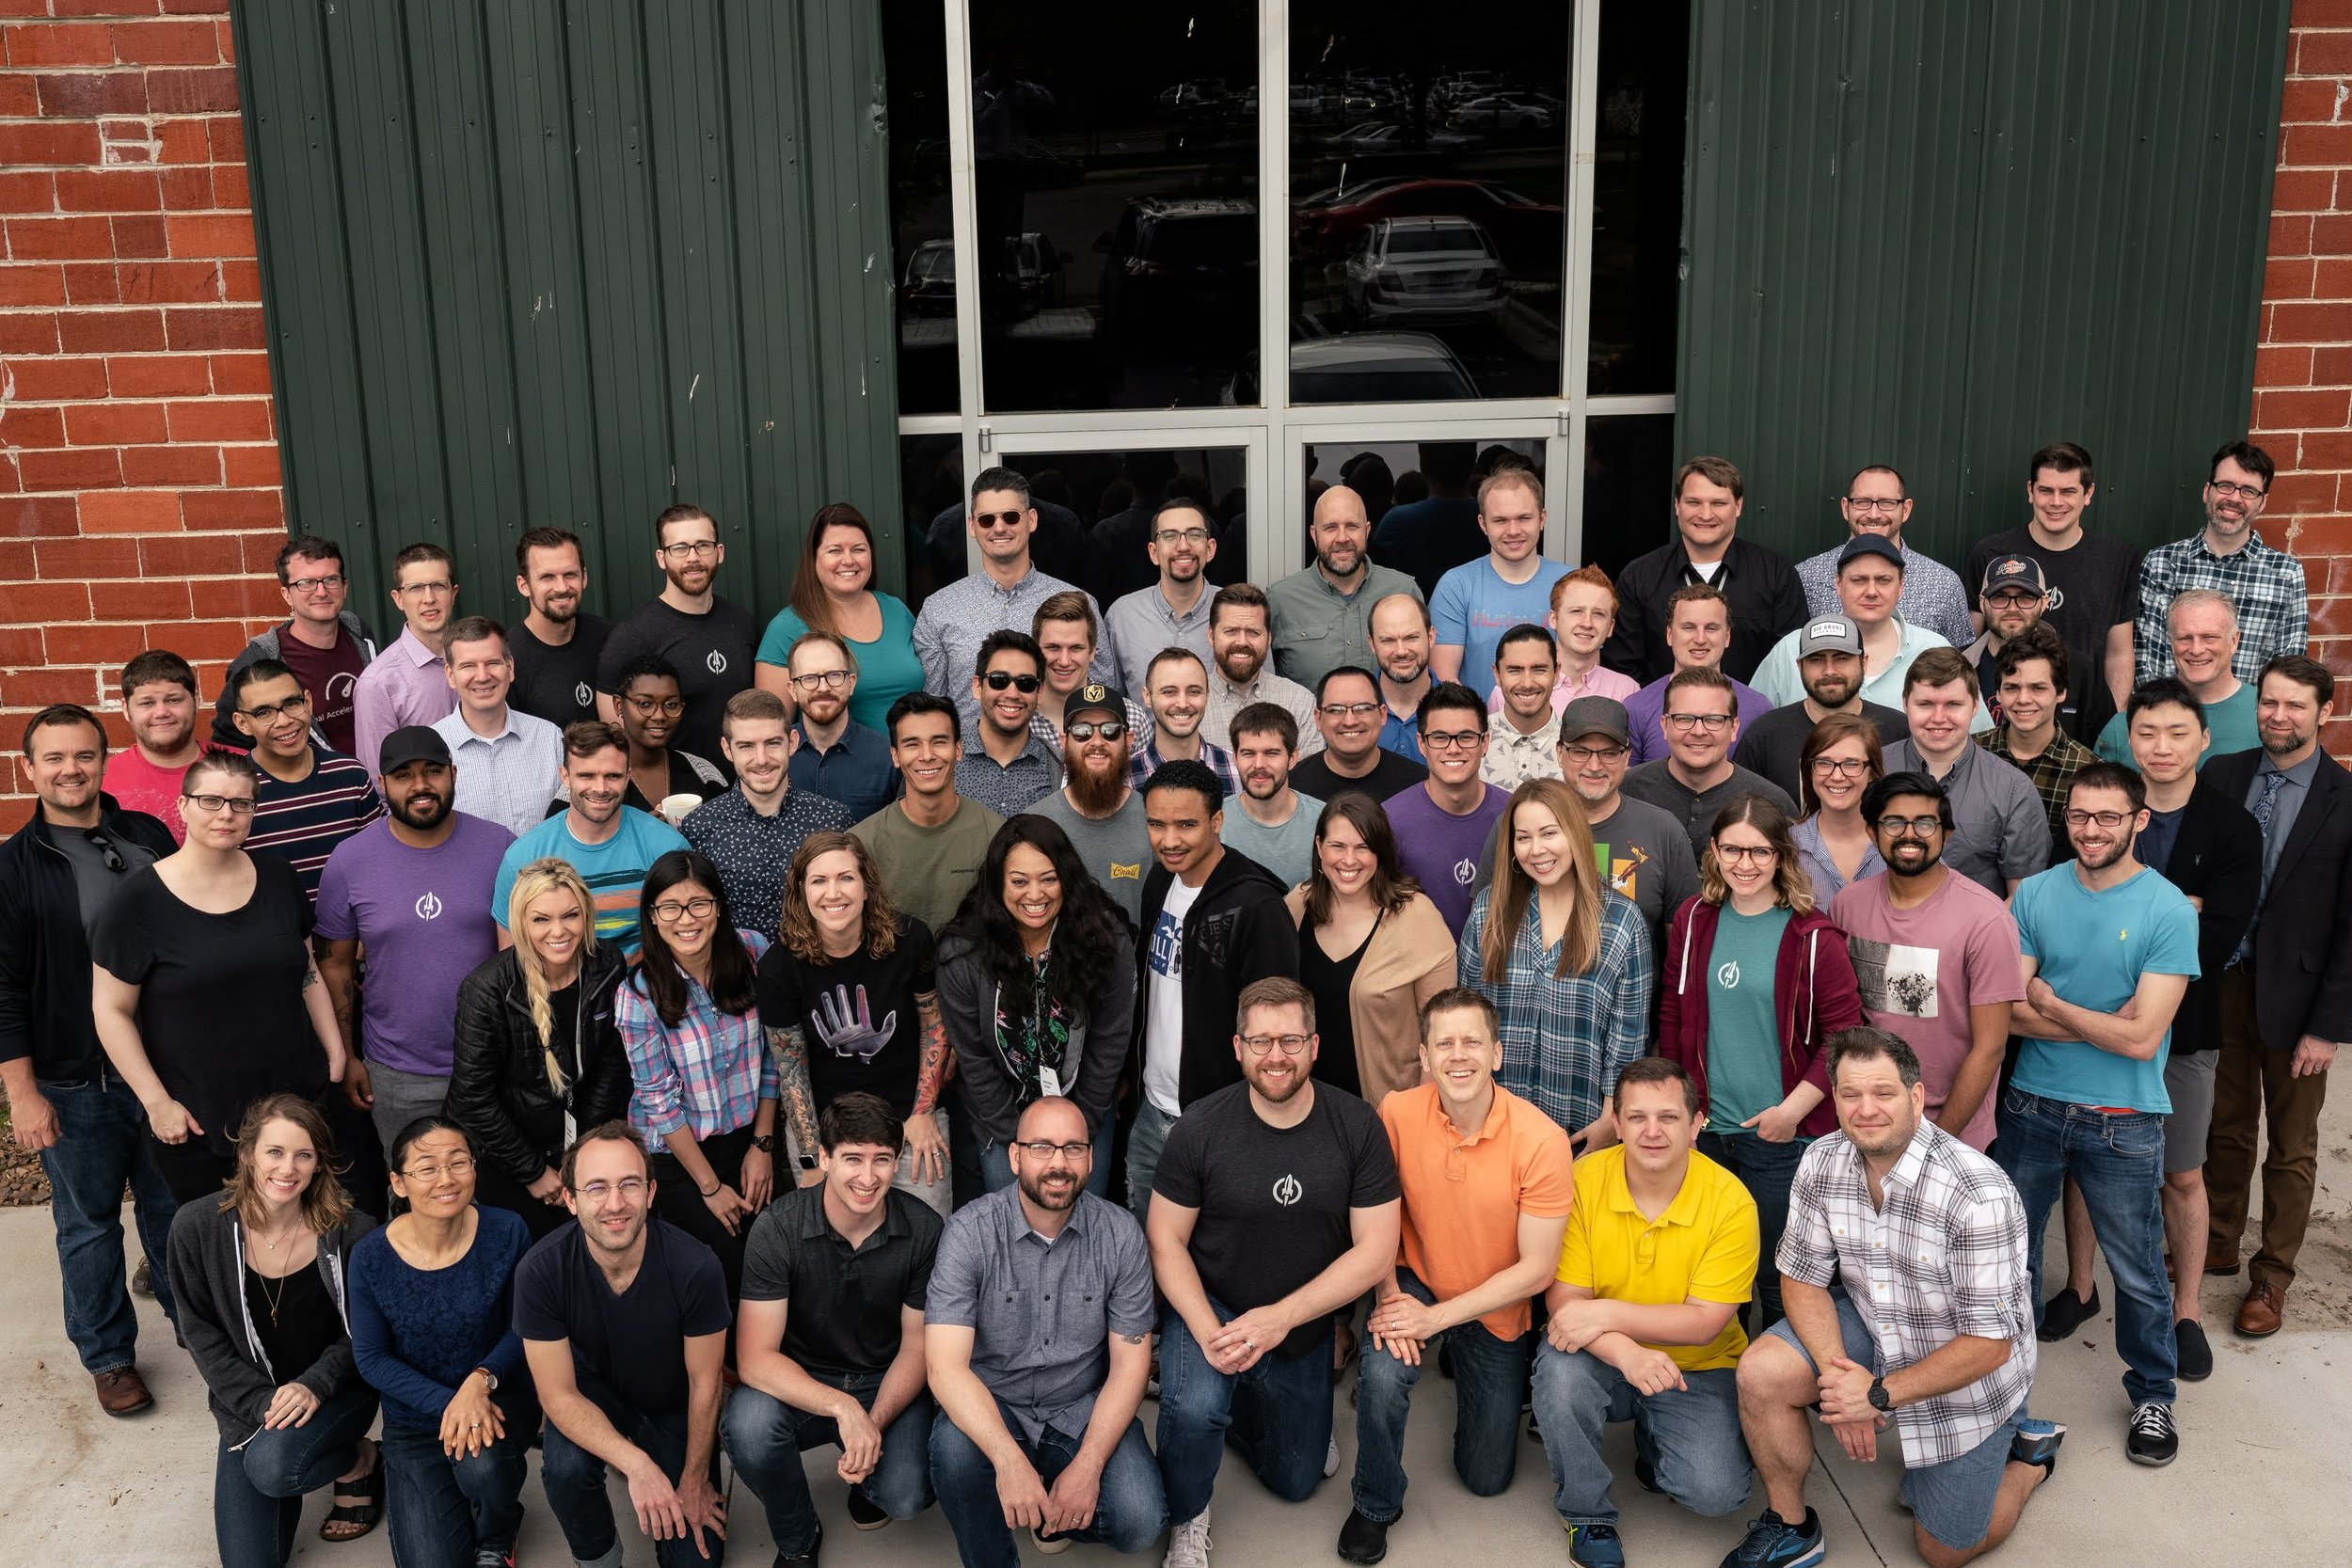 Bentonville-based RevUnit has grown to 74 employees and now has an additional office in Las Vegas.